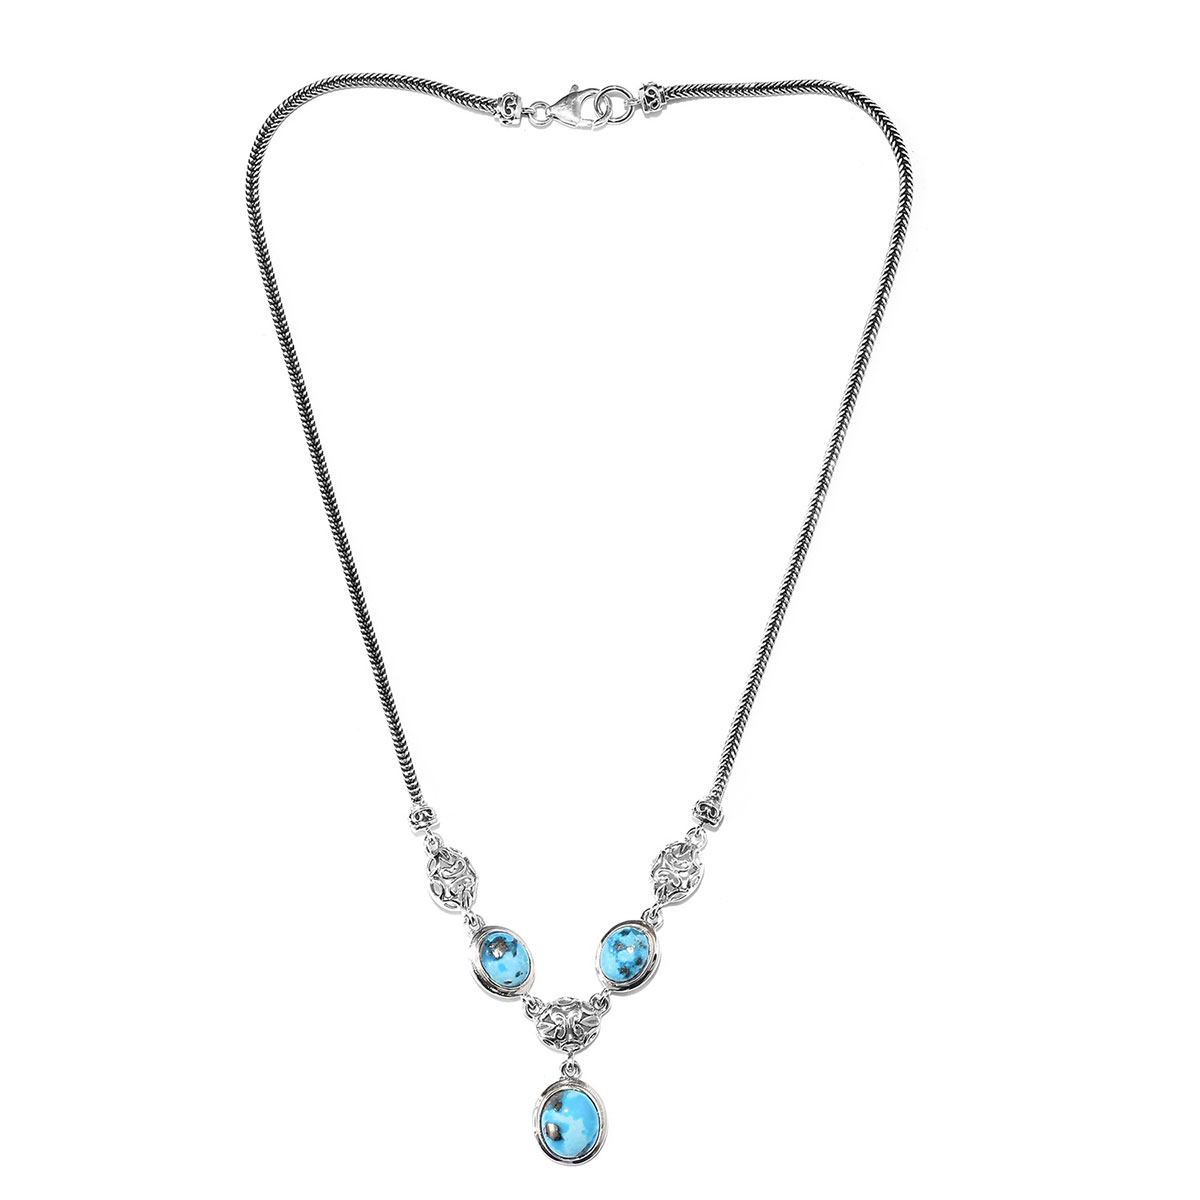 Artisan Crafted Persian Turquoise Foxtail Necklace (18 in) in Sterling Silver (18.38 g) 10.45 ctw